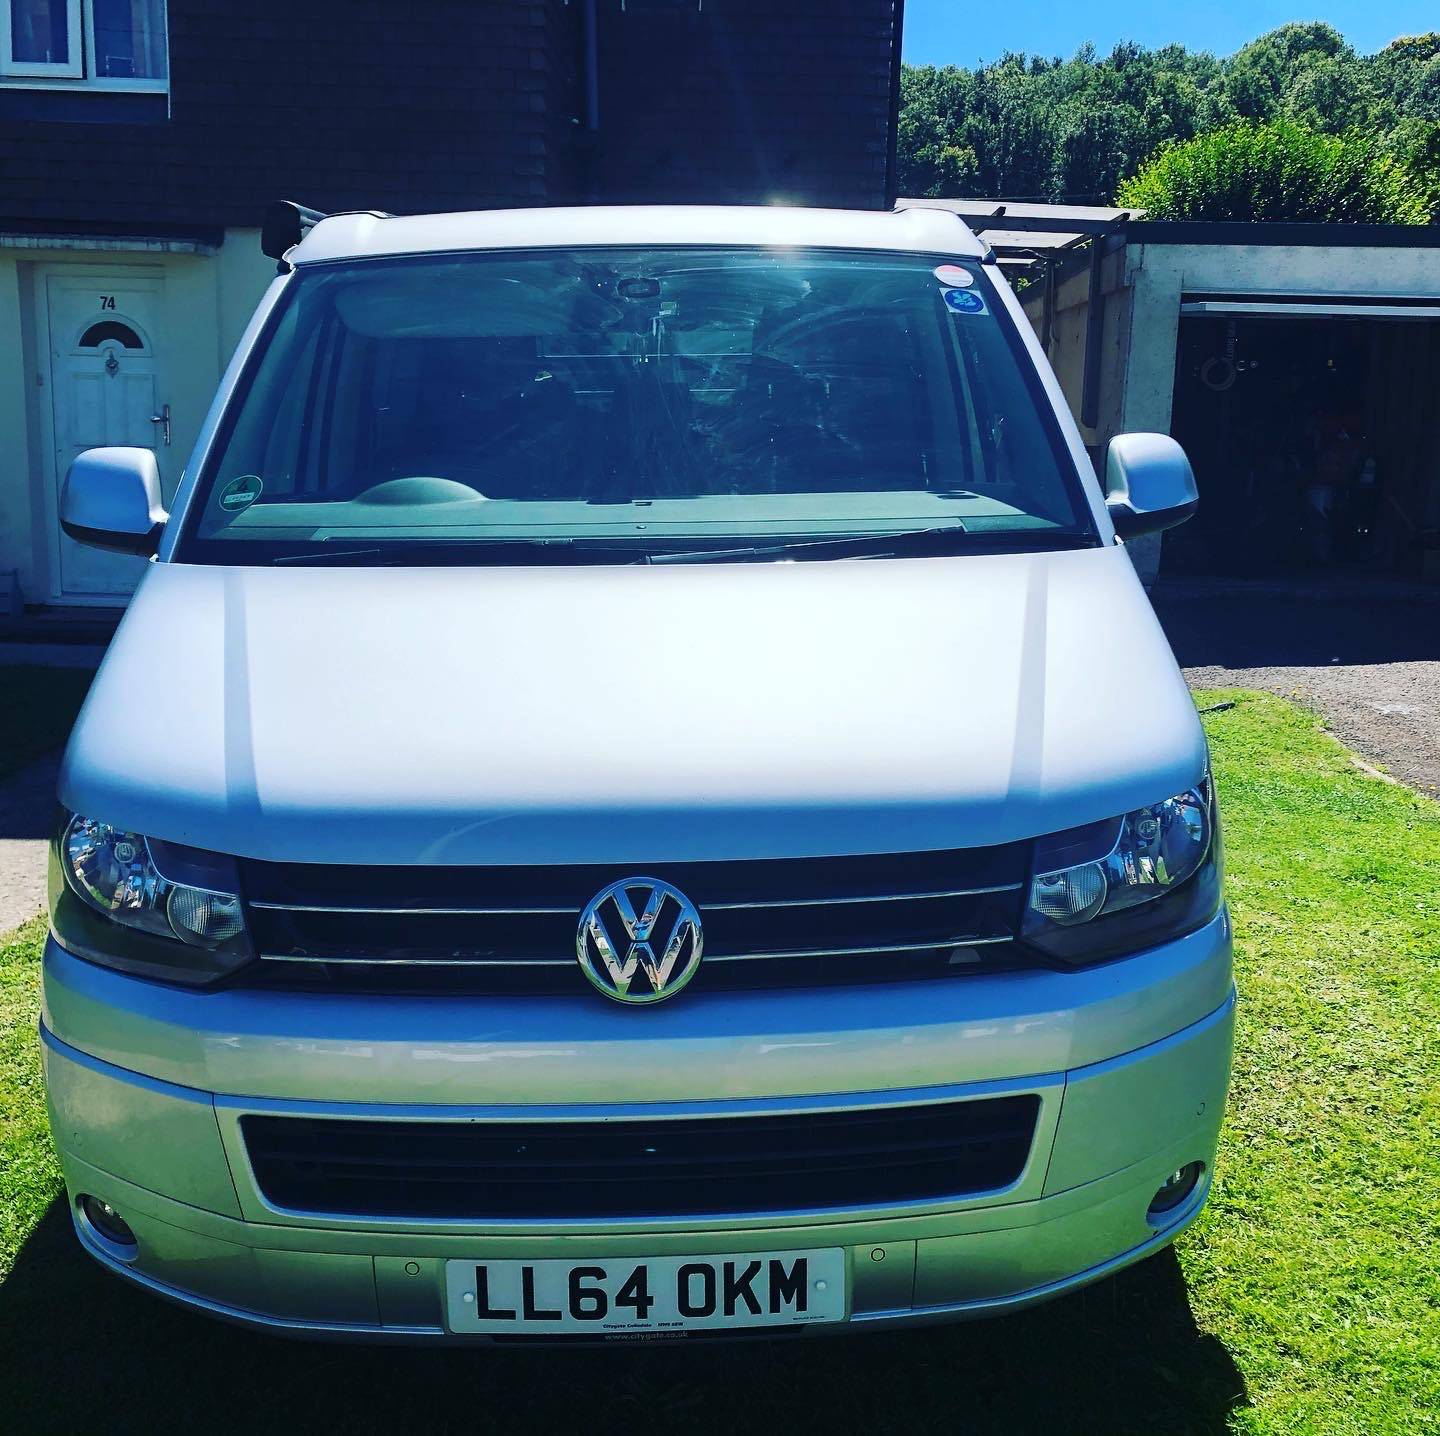 A VW T5 California Campervan called April-Eleanor and for hire in warminster, Wiltshire